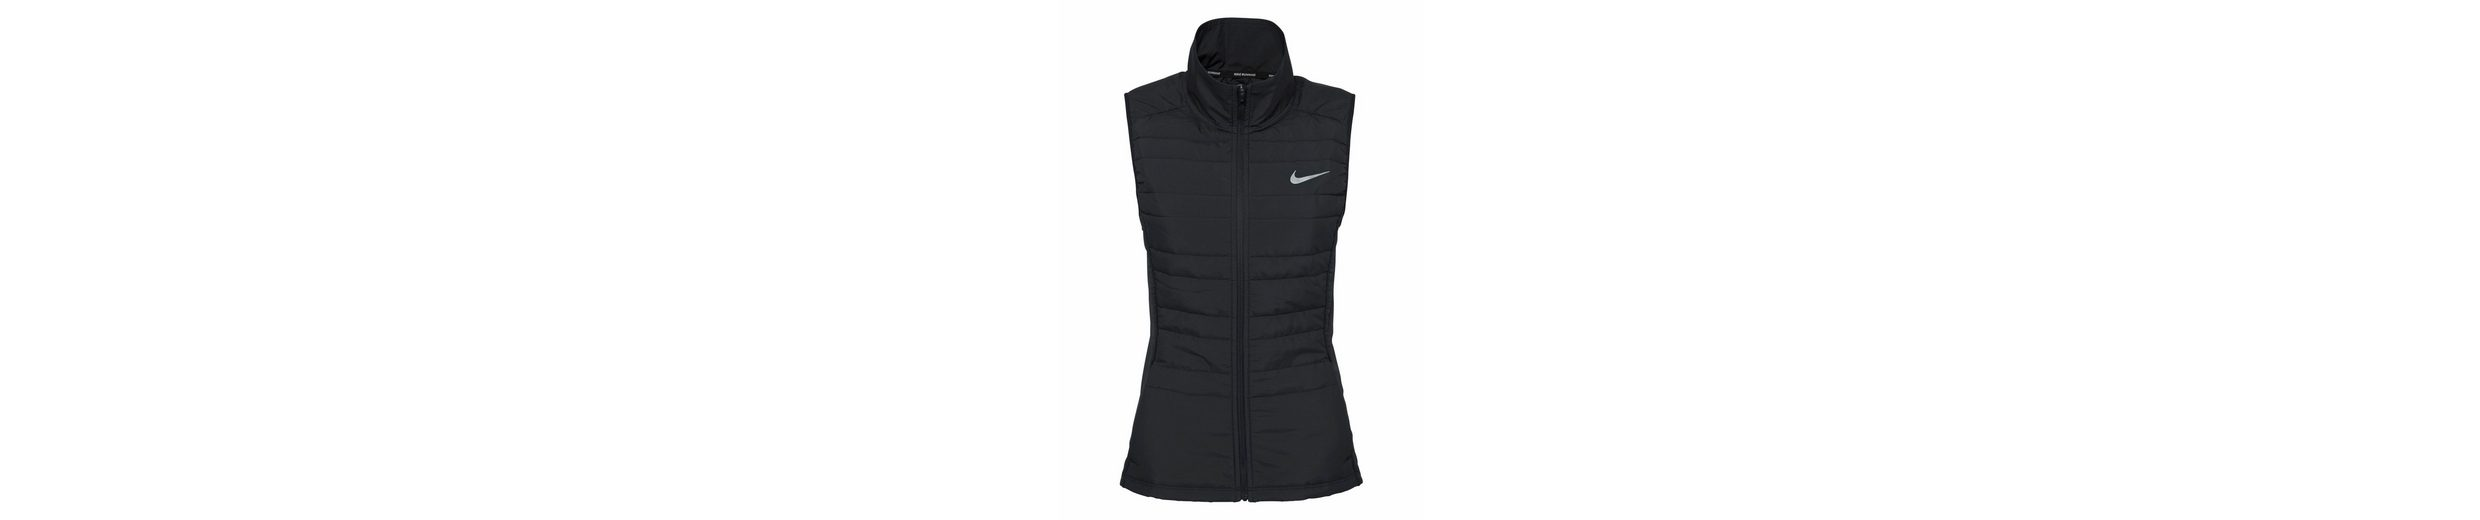 W FILLED Nike Funktionsweste VEST Funktionsweste Nike VEST ESSENTIALS W ESSENTIALS qaExfza